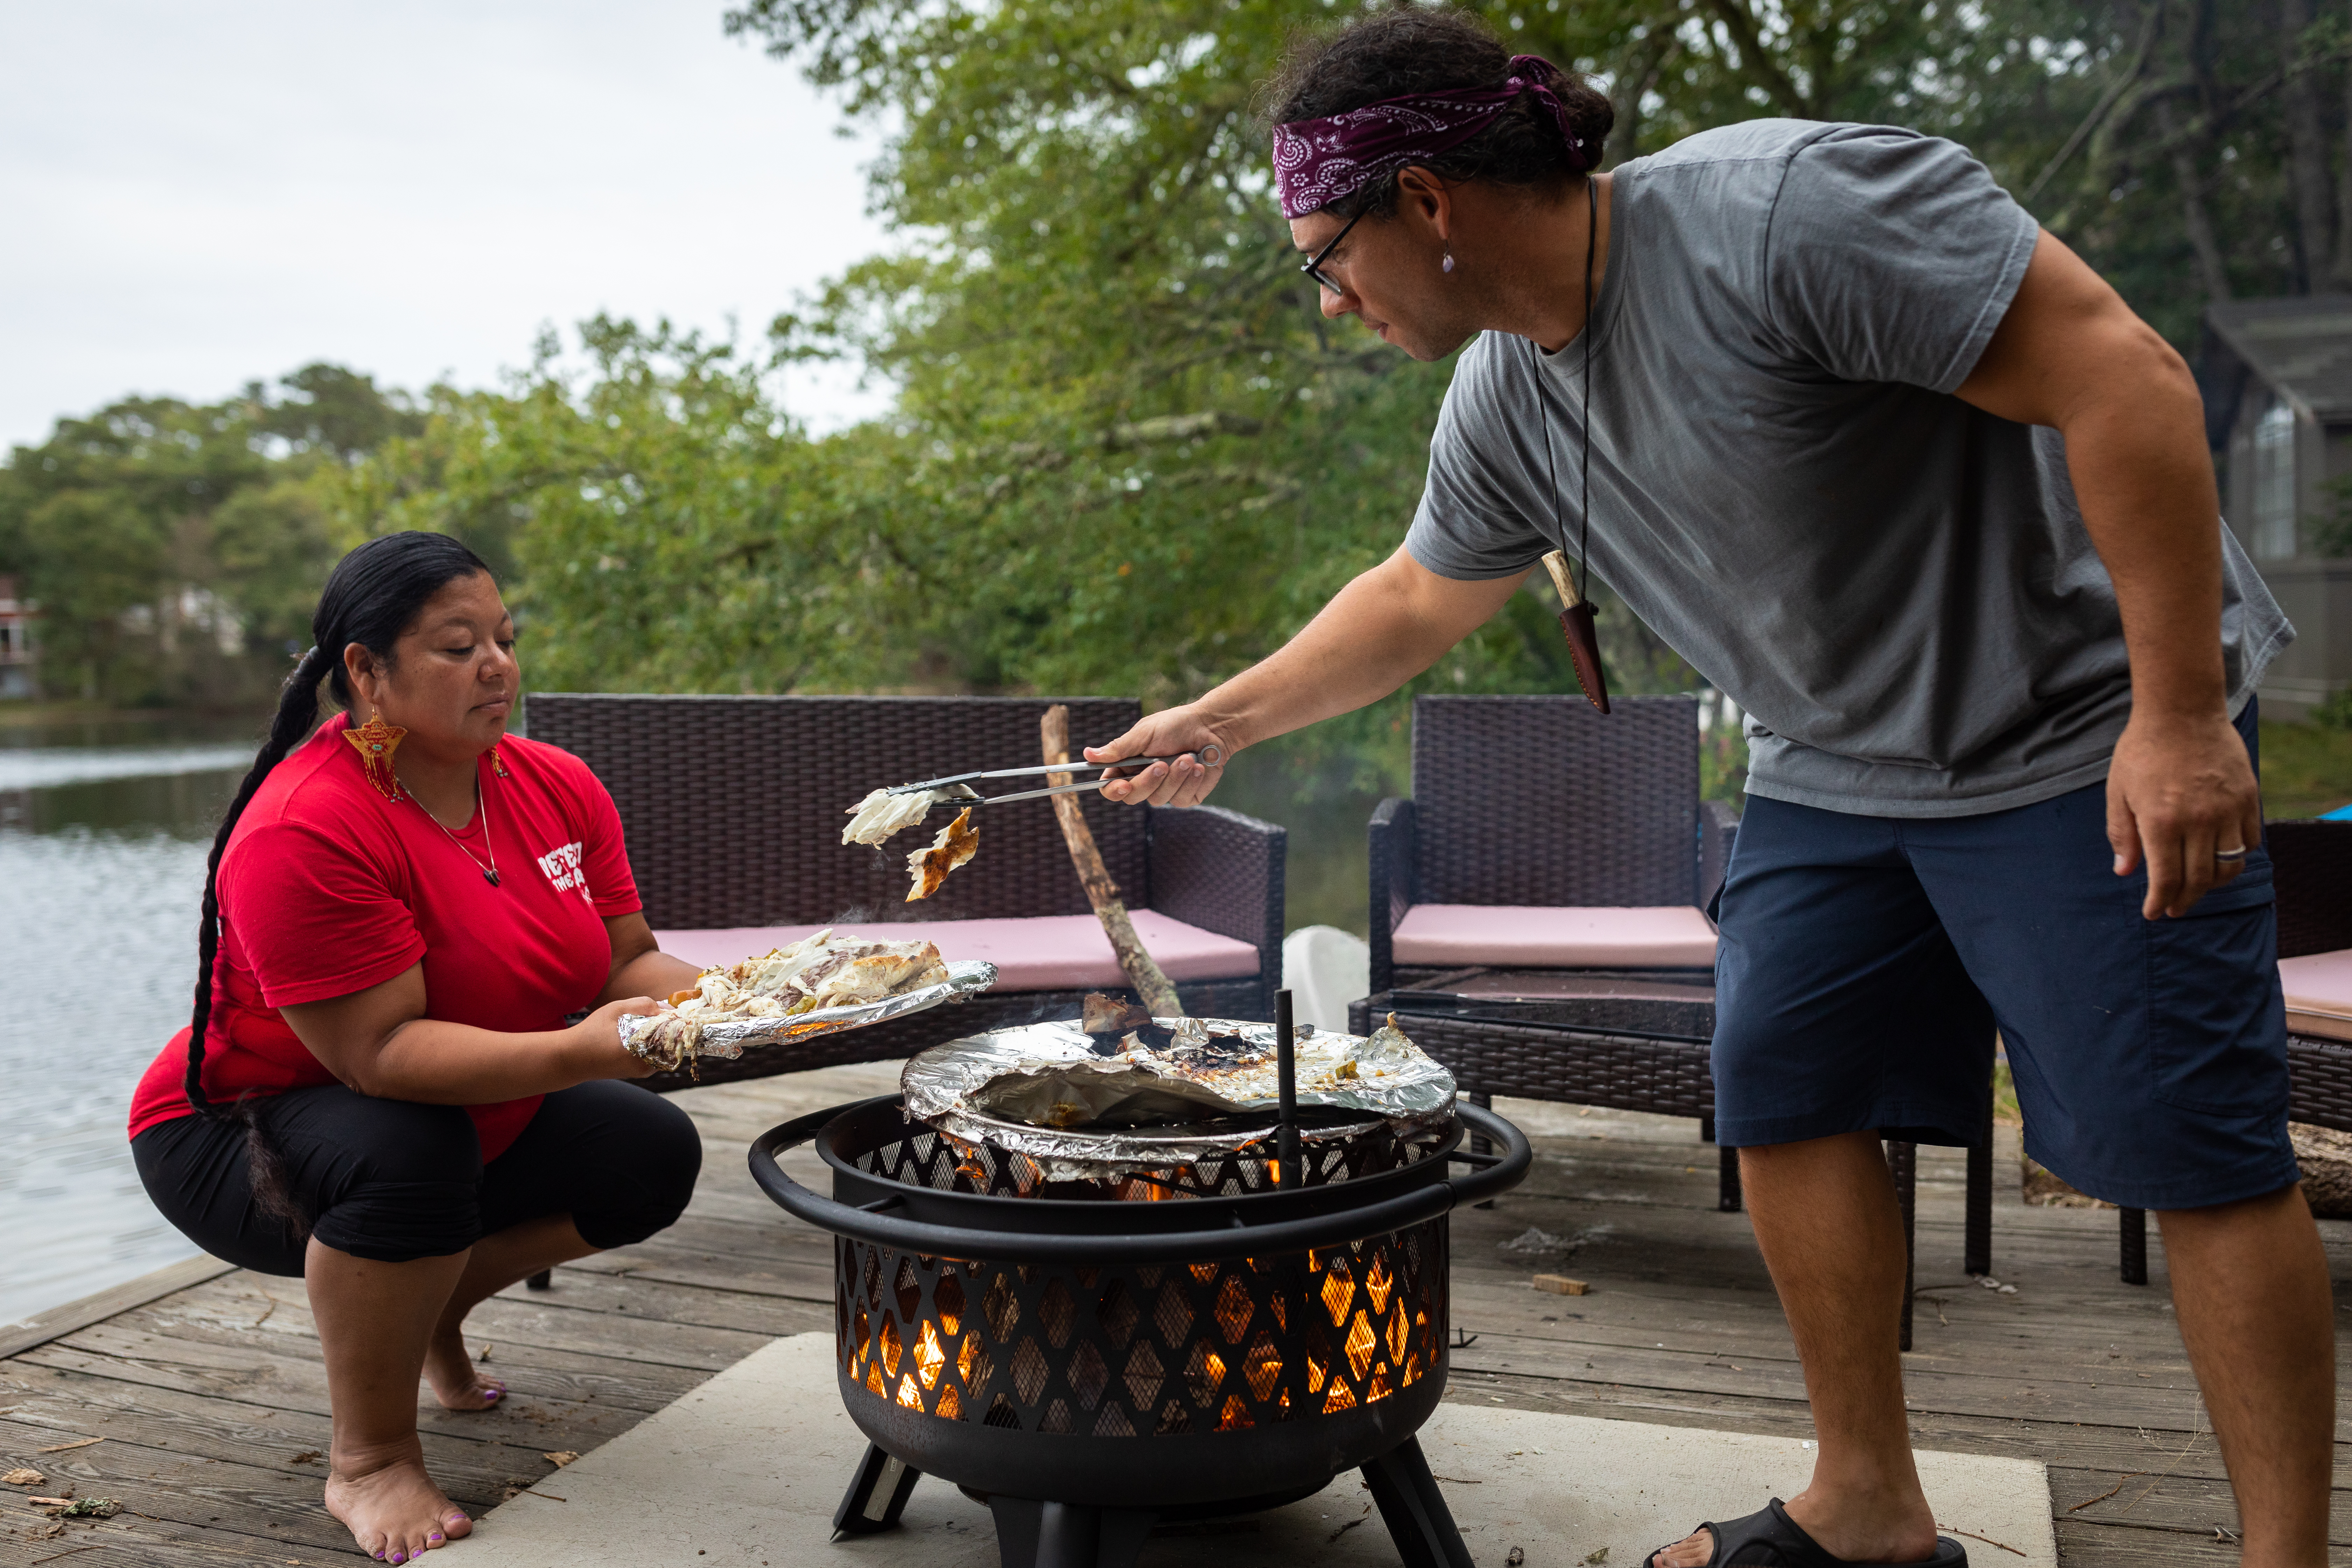 Marcus Hendricks, a member of the Eastern Woodlands Rematriation Collective, passes pieces of cooked striped bass to Rachael Devaney in Centerville.